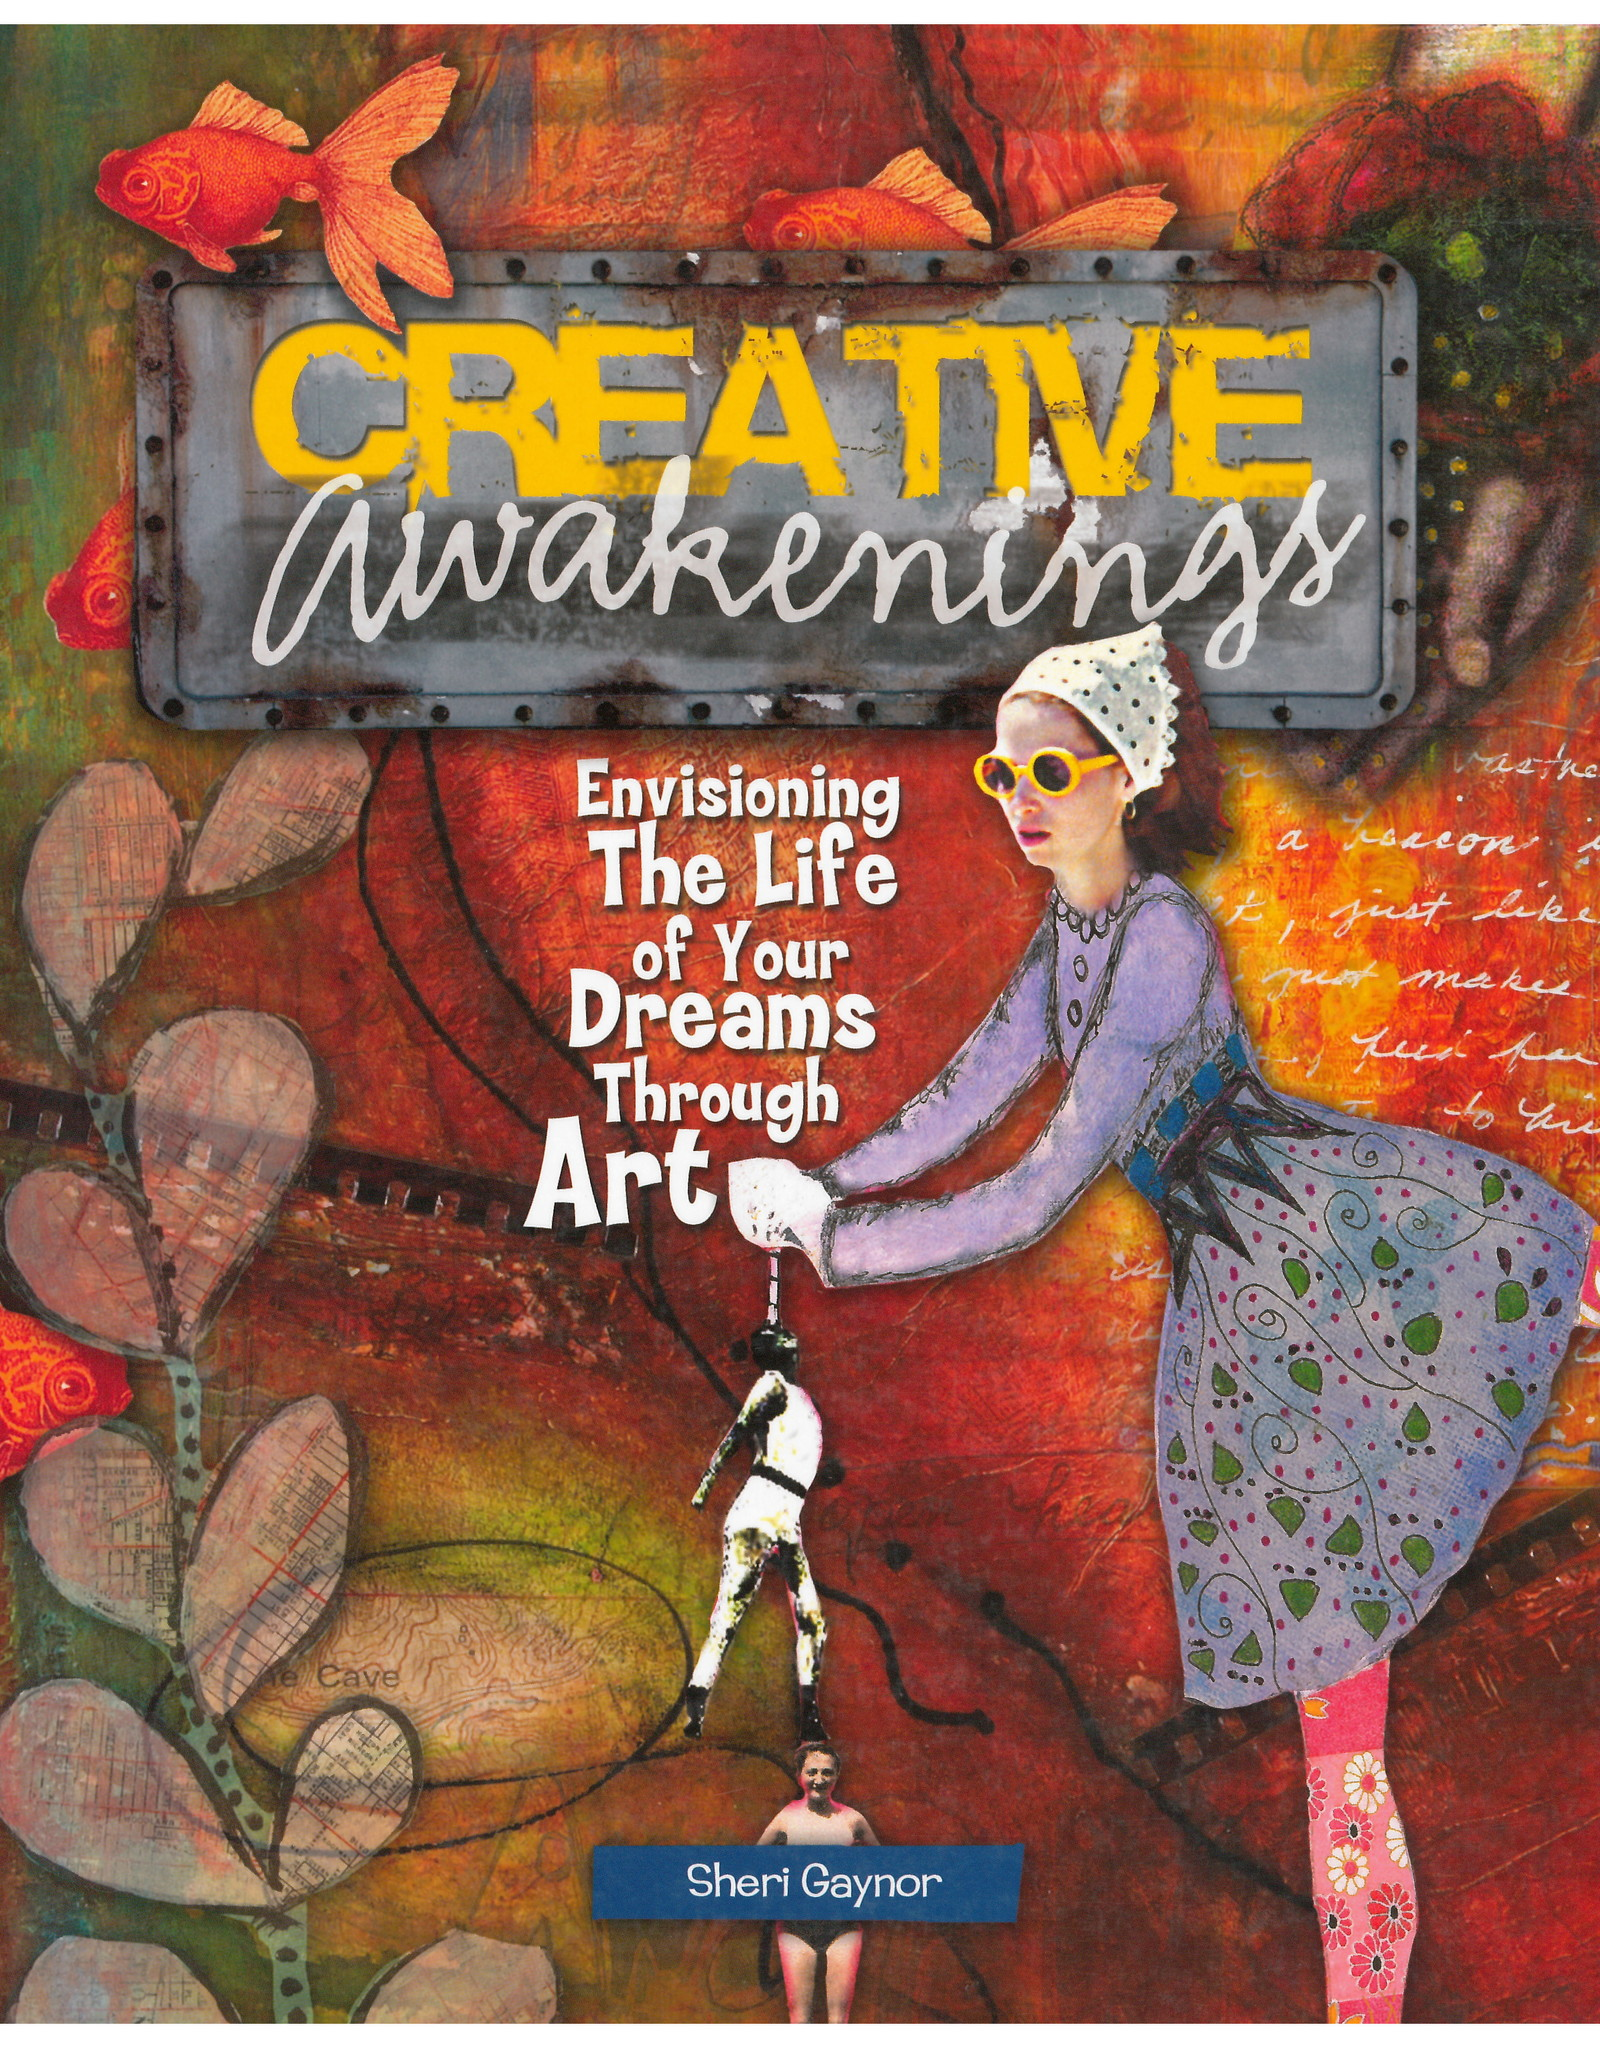 Creative Awakenings / Sheri Gaynor